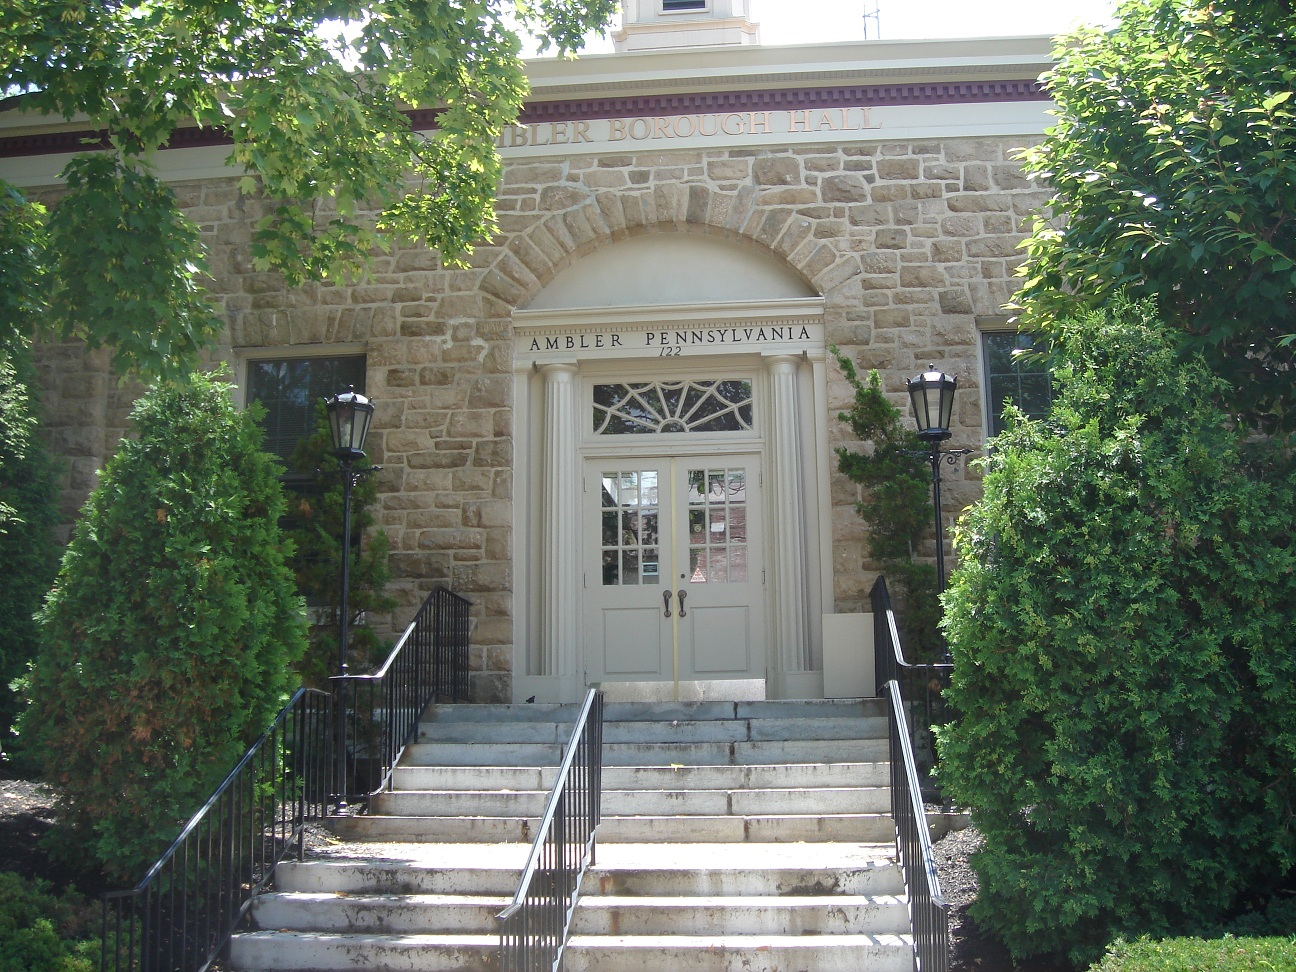 Ambler Borough Hall